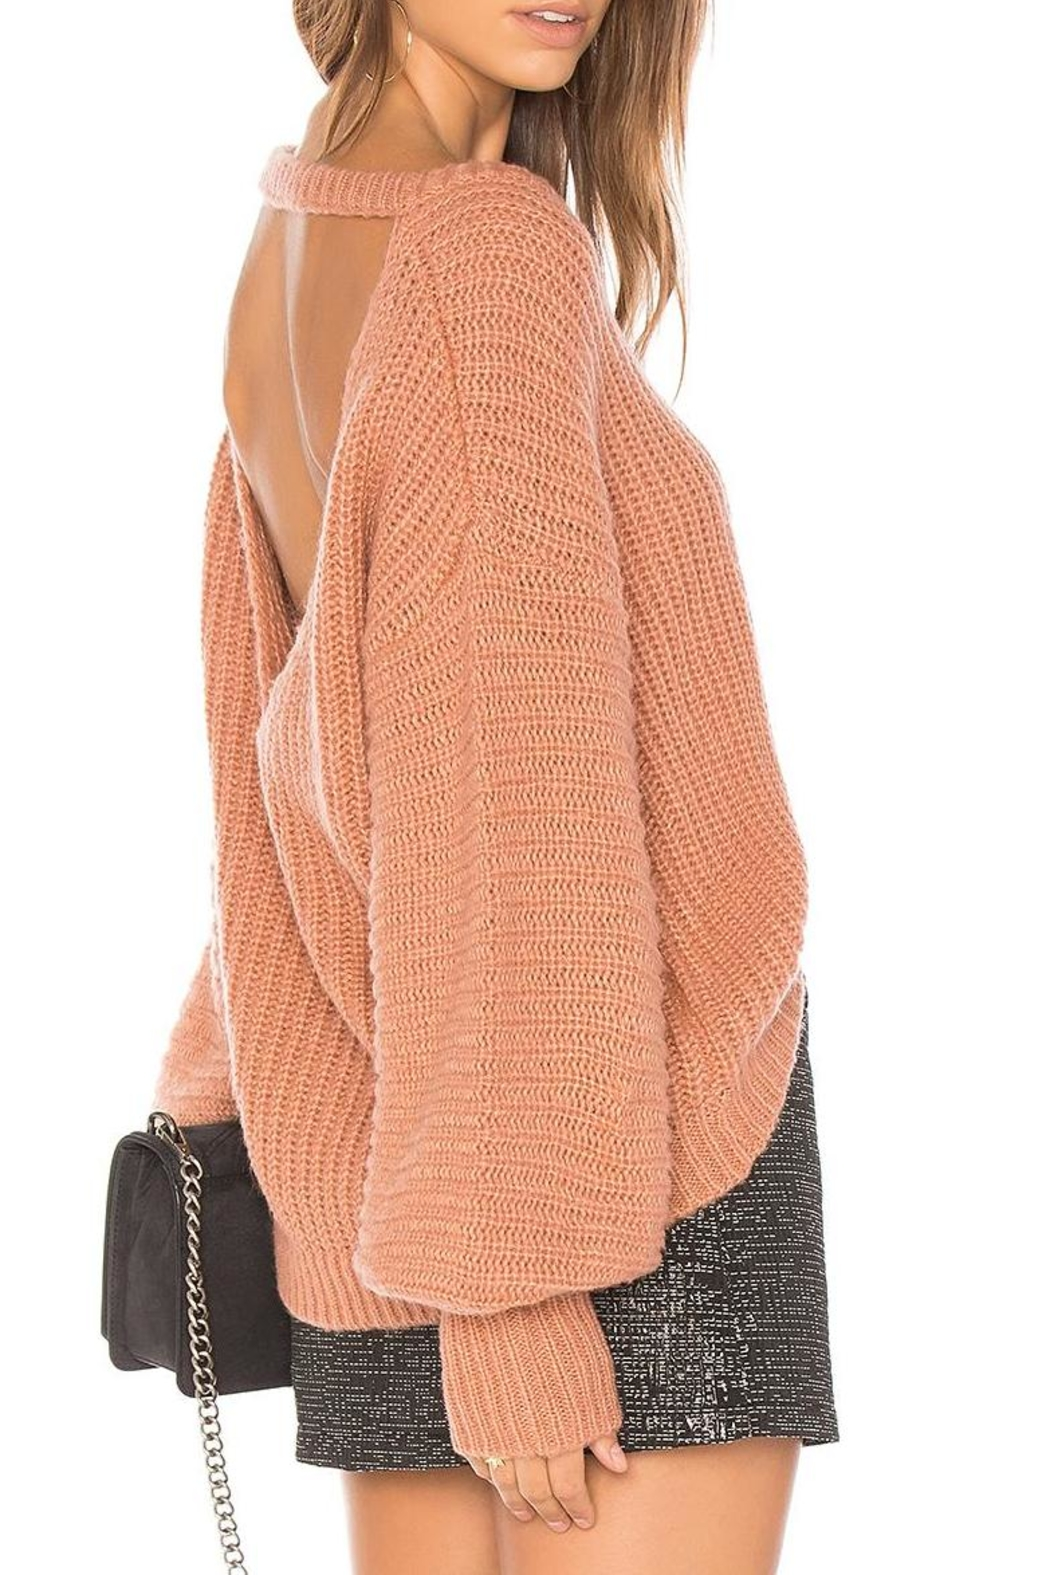 Heartloom Portia Sweater - Front Full Image